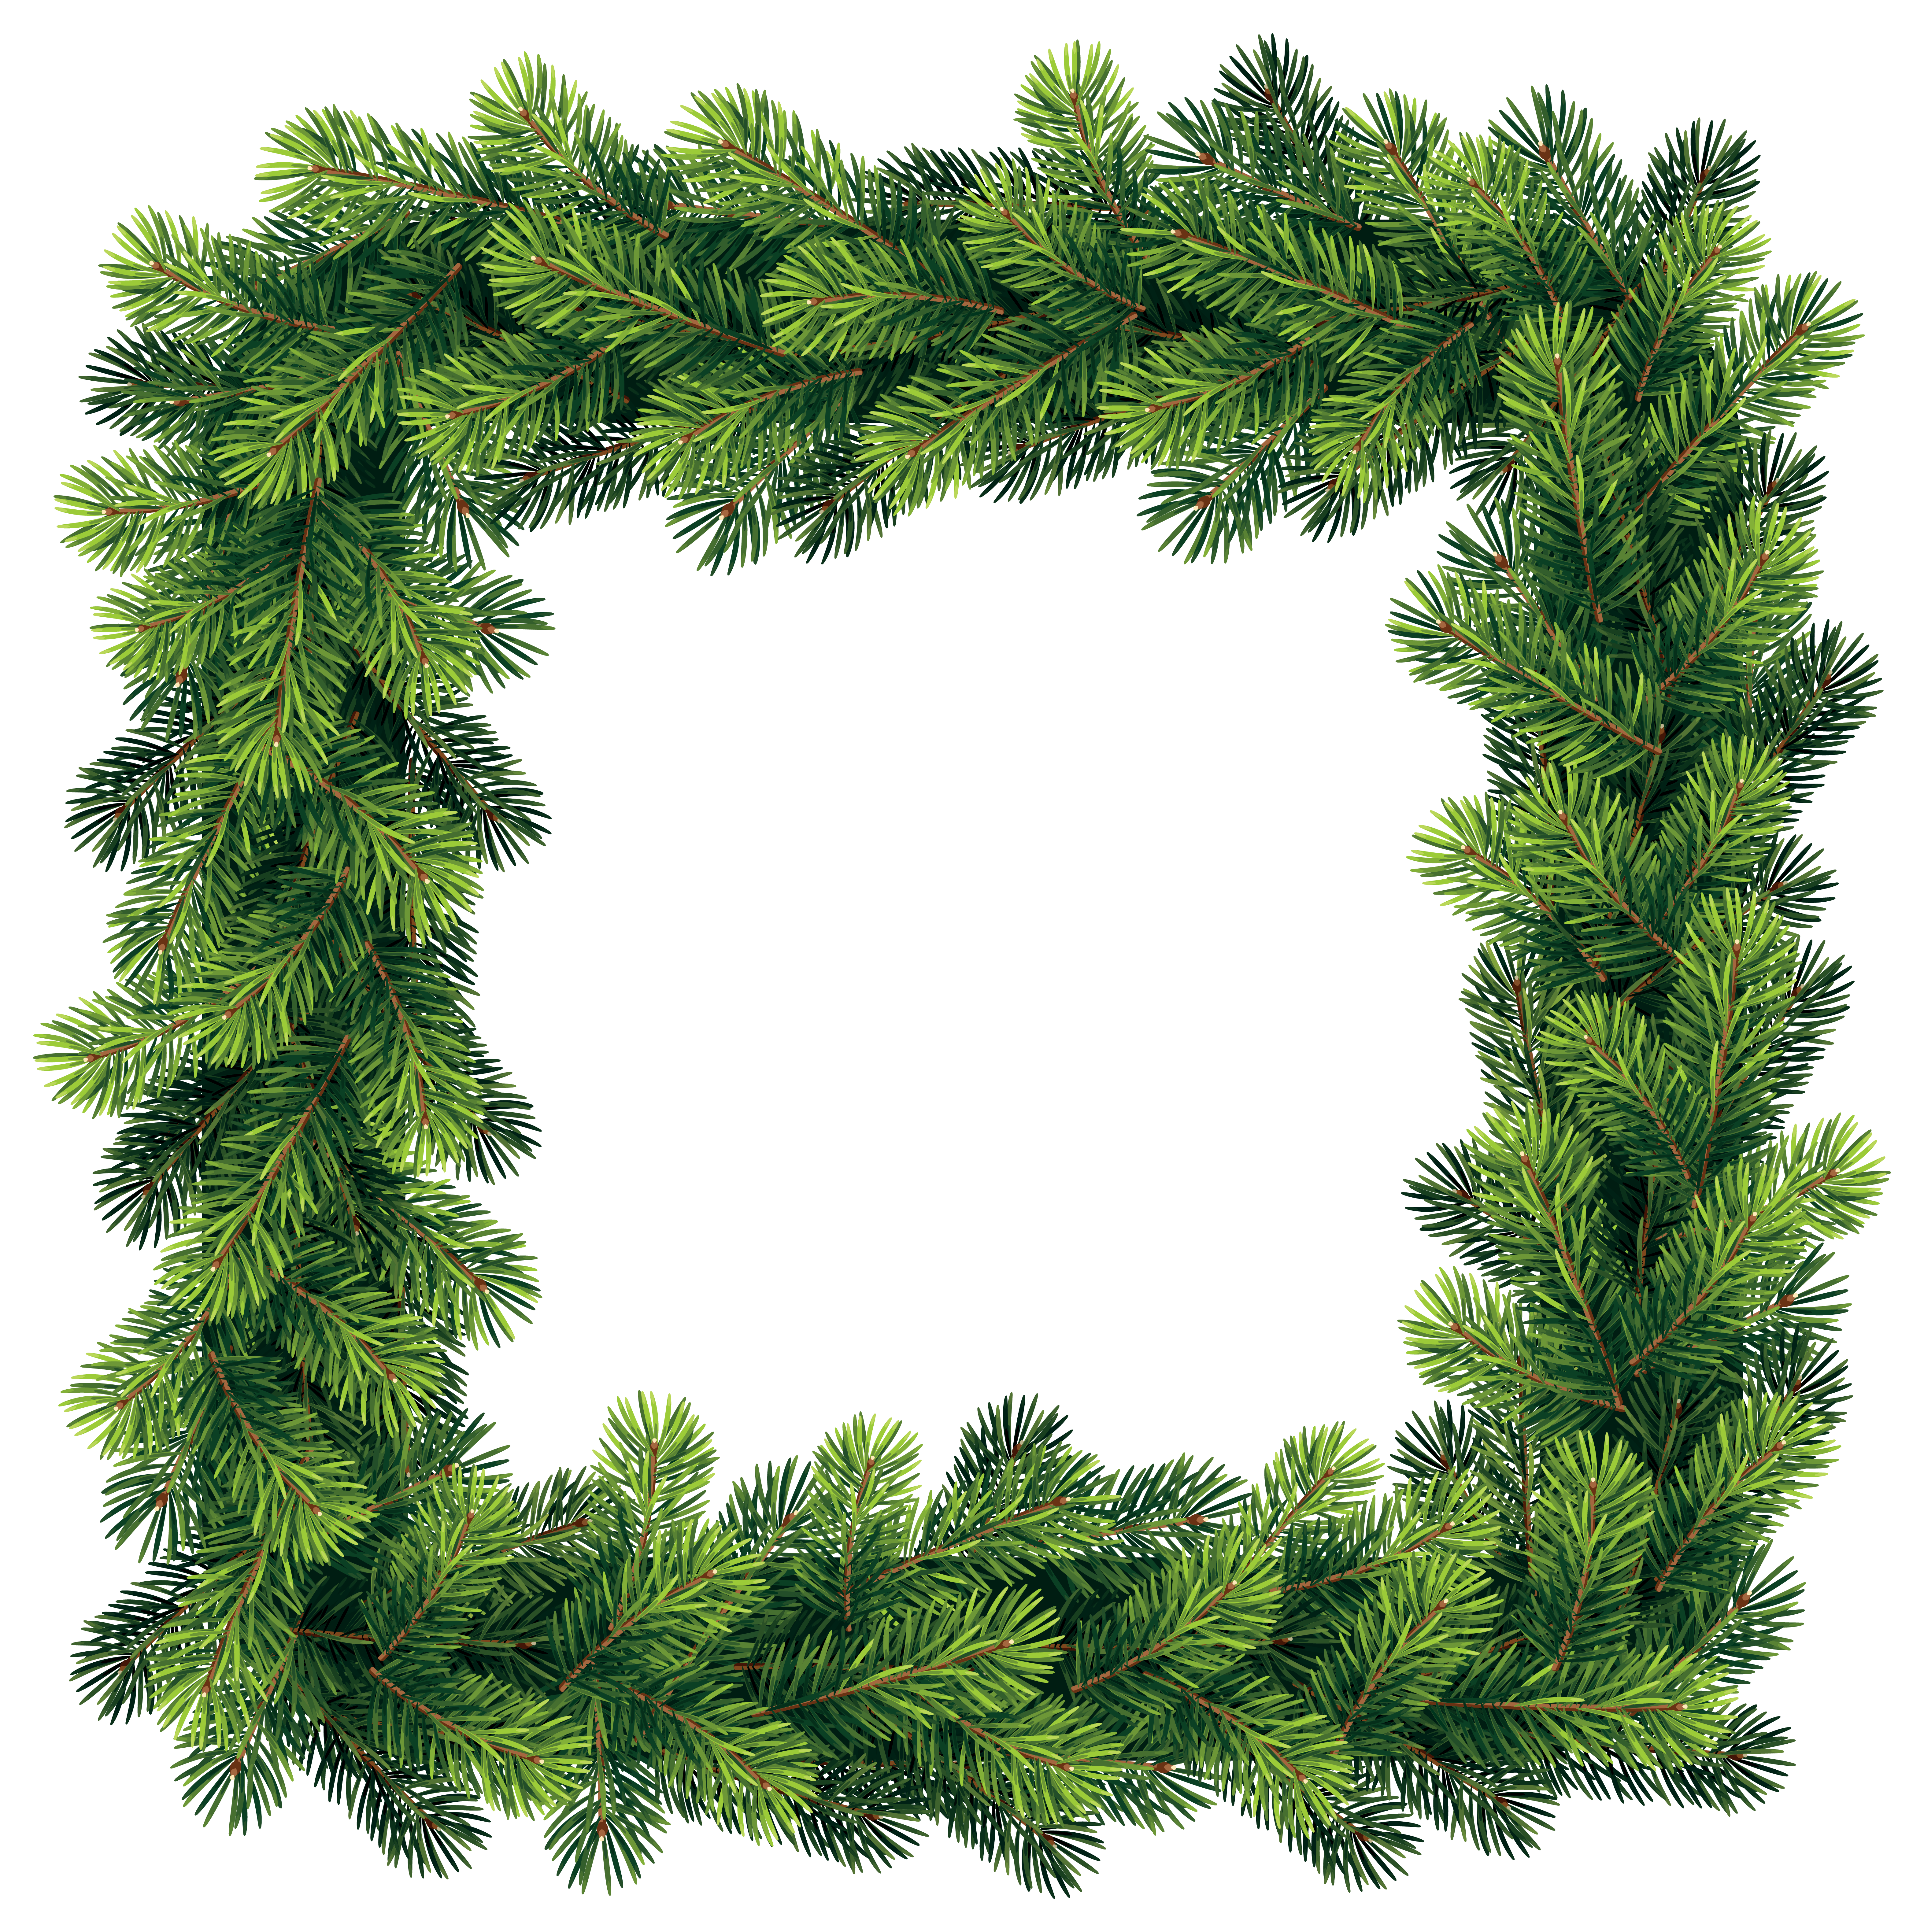 Pine tree border clipart images gallery for free download.